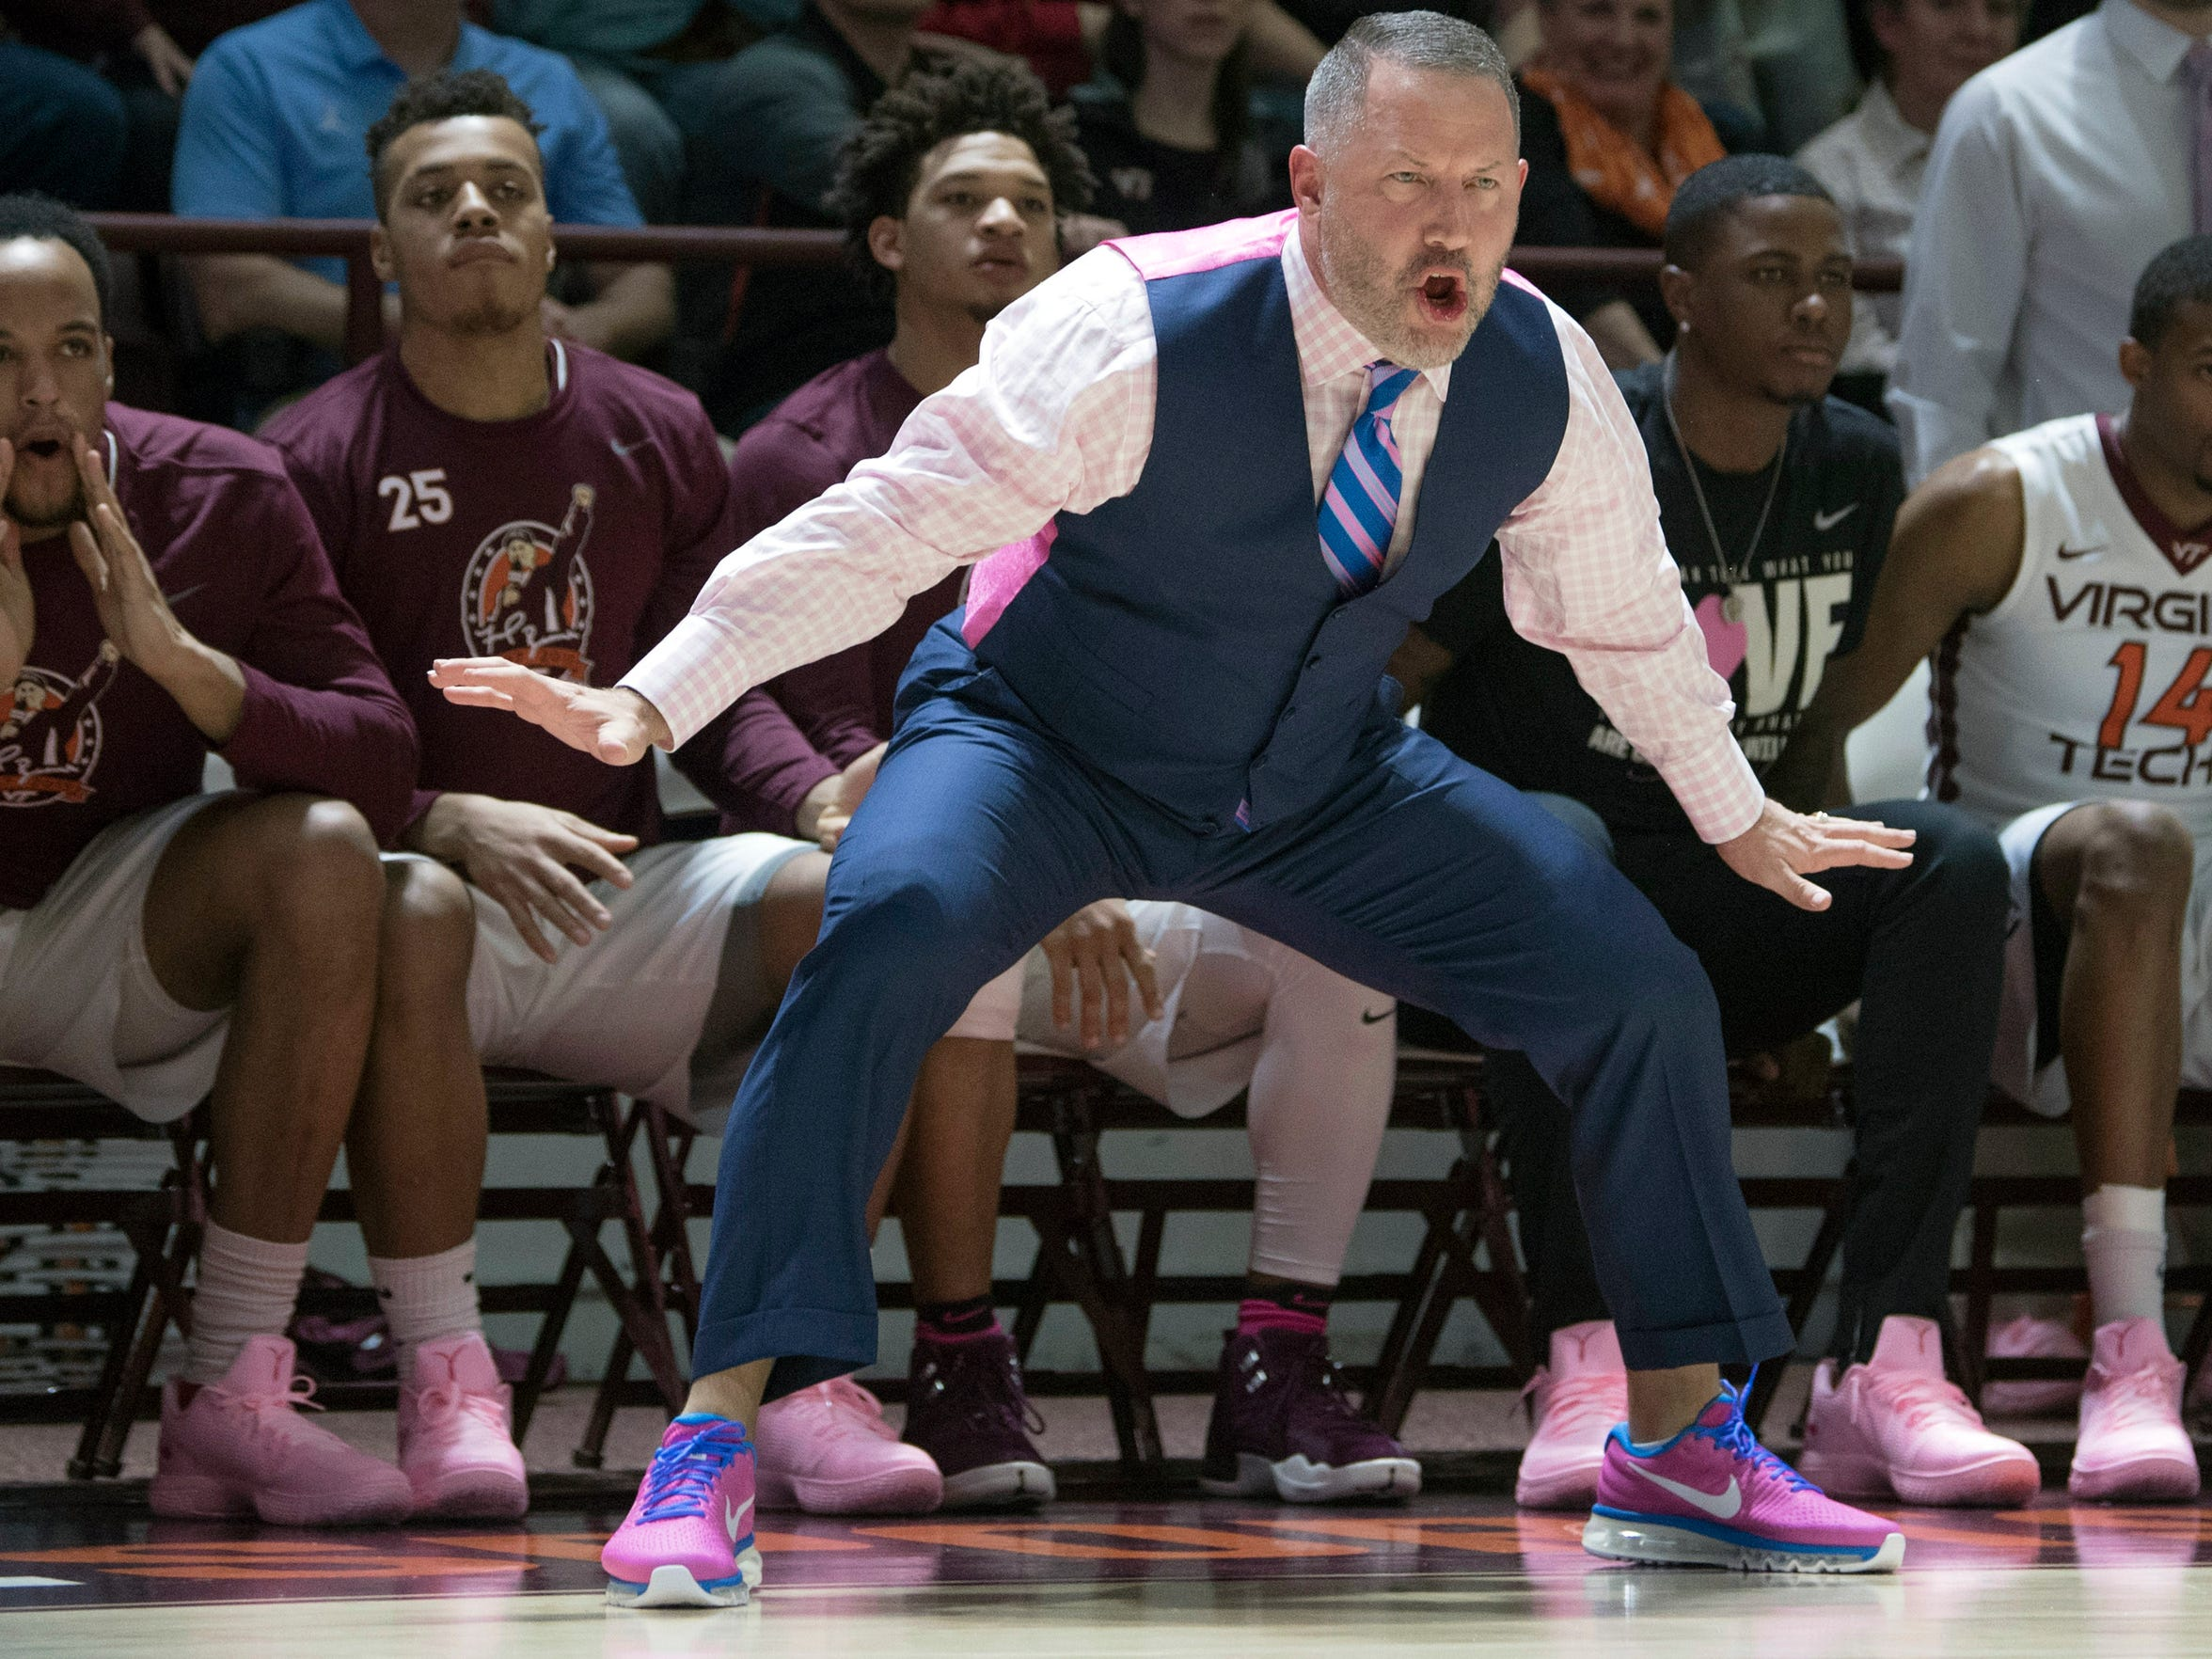 Virginia Tech's head coach Buzz Williams yells in the play against North Carolina during the first half of an NCAA college basketball game in Blacksburg, Va. Monday, Jan. 22, 2018. (AP Photo/Lee Luther Jr.)